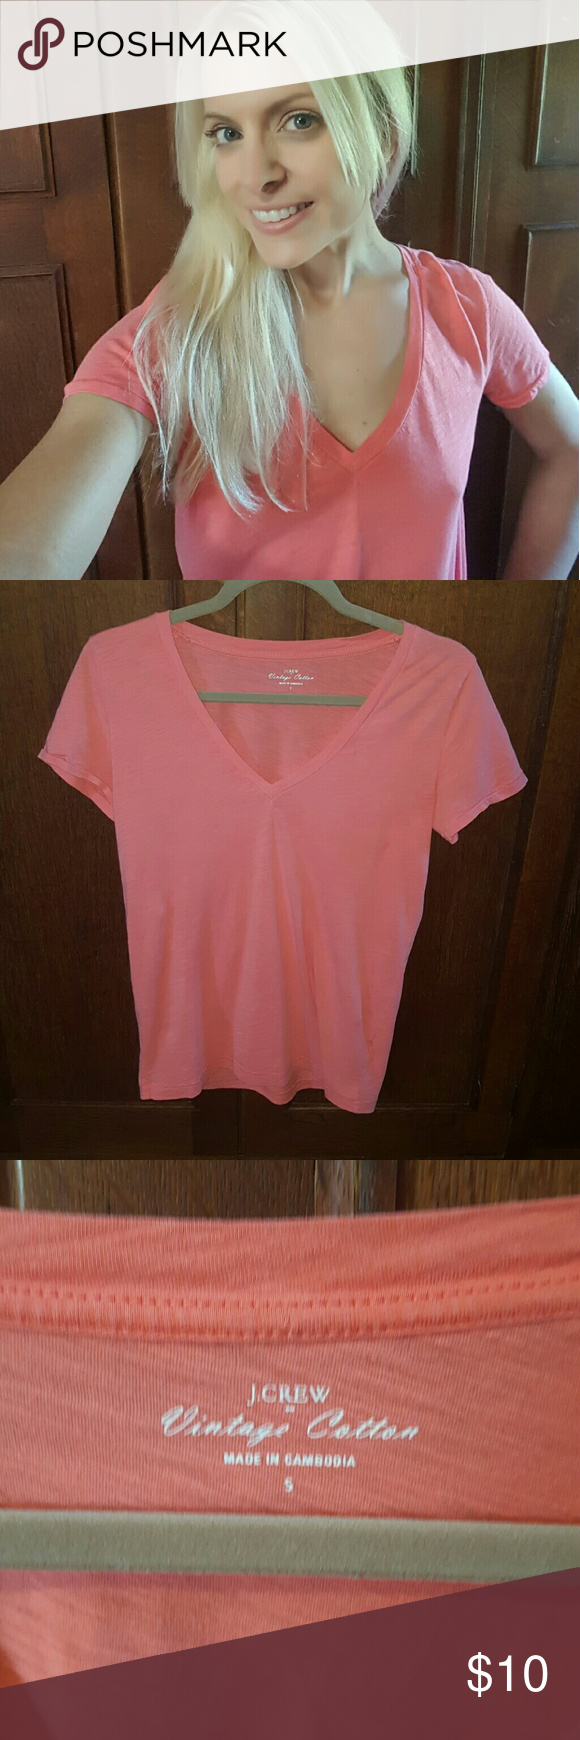 J. Crew Vintage Cotton V-neck Tee 👍 Reasonable offers  👍 Questions welcome 👍Shipping ASAP 👍 Bundles 15% off 3 or more 🚫 Trades 🚫 Lowballing 🚫 Off-app/Paypal sales  Good condition! Roomy fit, worn in look, comfy. Salmon pink J. Crew Tops Tees - Short Sleeve